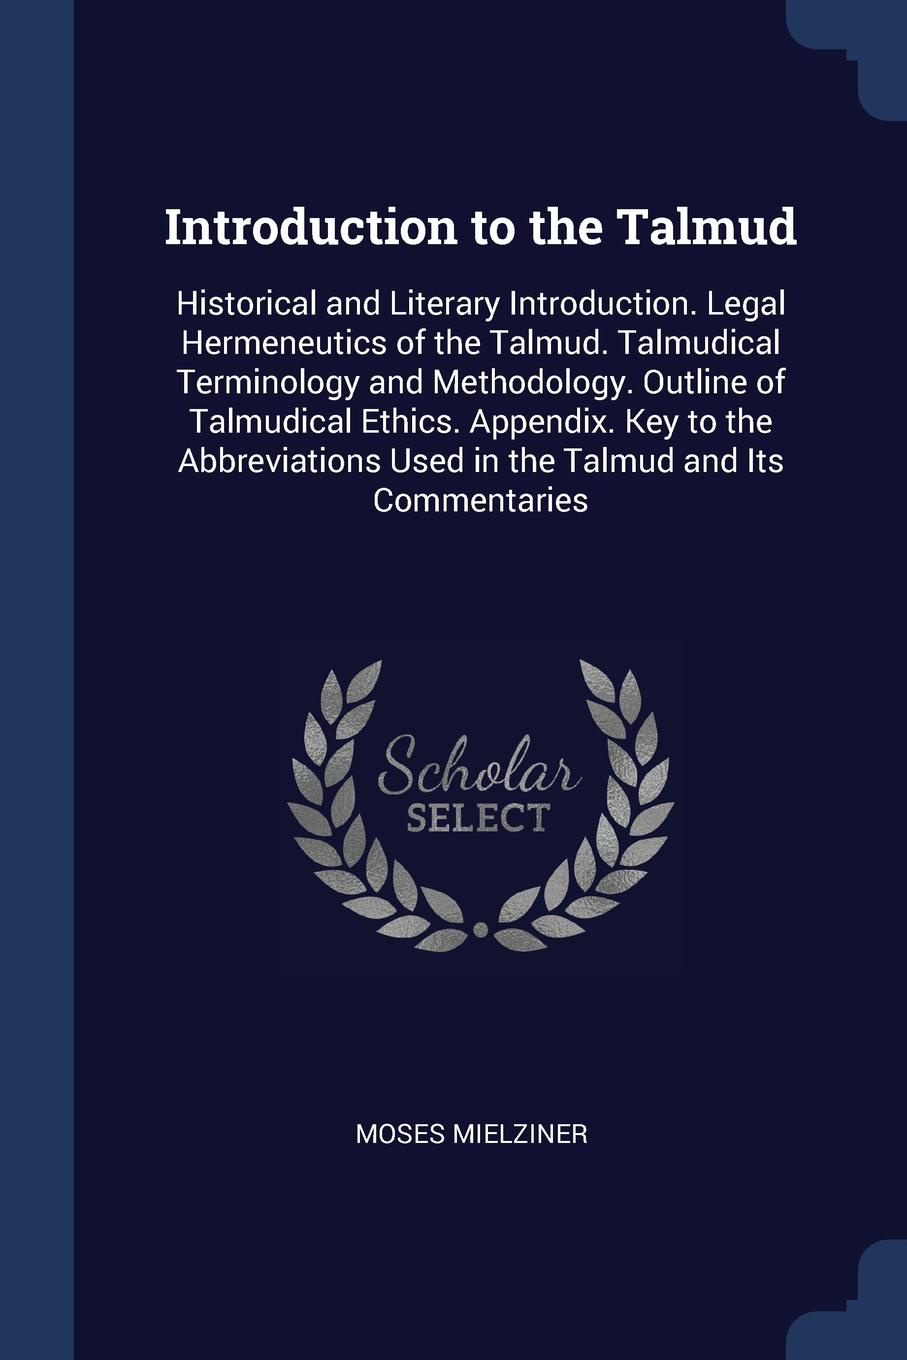 Moses Mielziner Introduction to the Talmud. Historical and Literary Introduction. Legal Hermeneutics of Talmudical Terminology Methodology. Outline Ethics. Appendix. Key Abbreviations Used in Talmud Its Commentaries